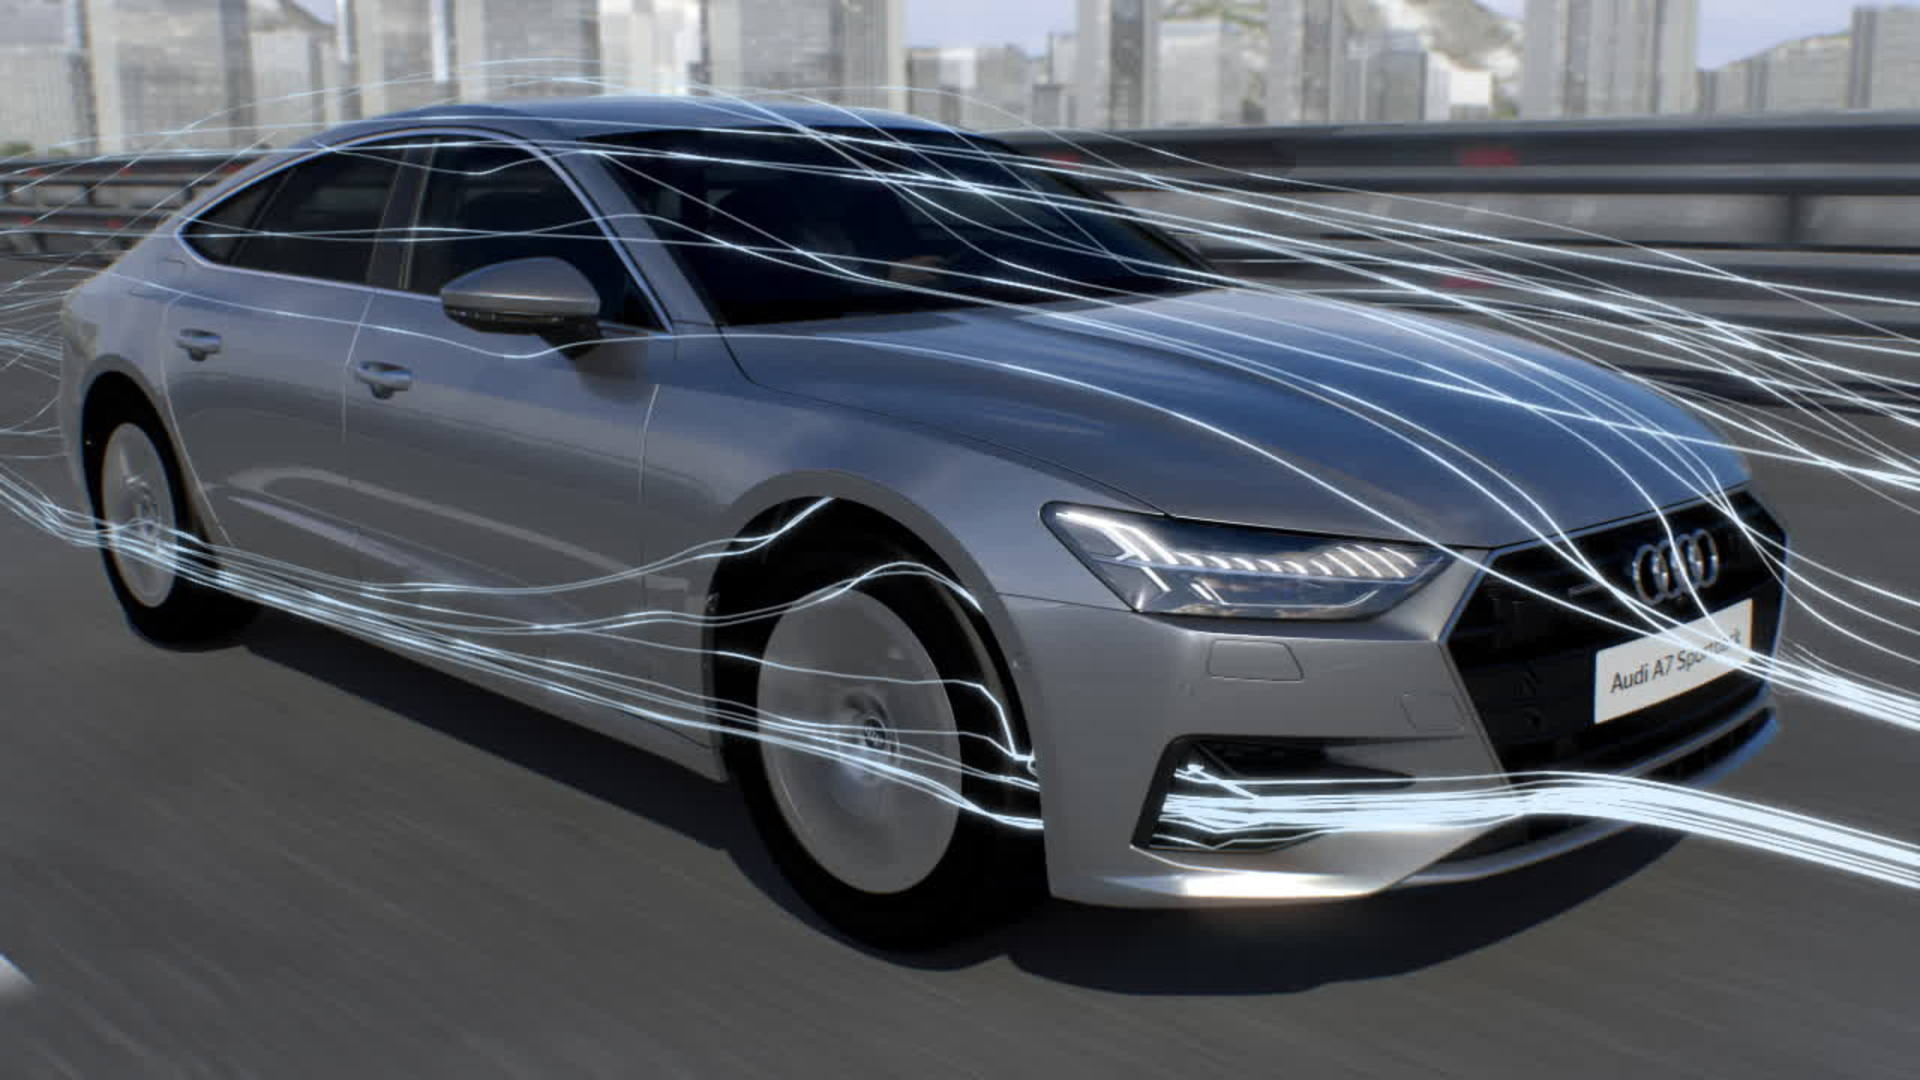 Audi A7 Animation aerodynamics